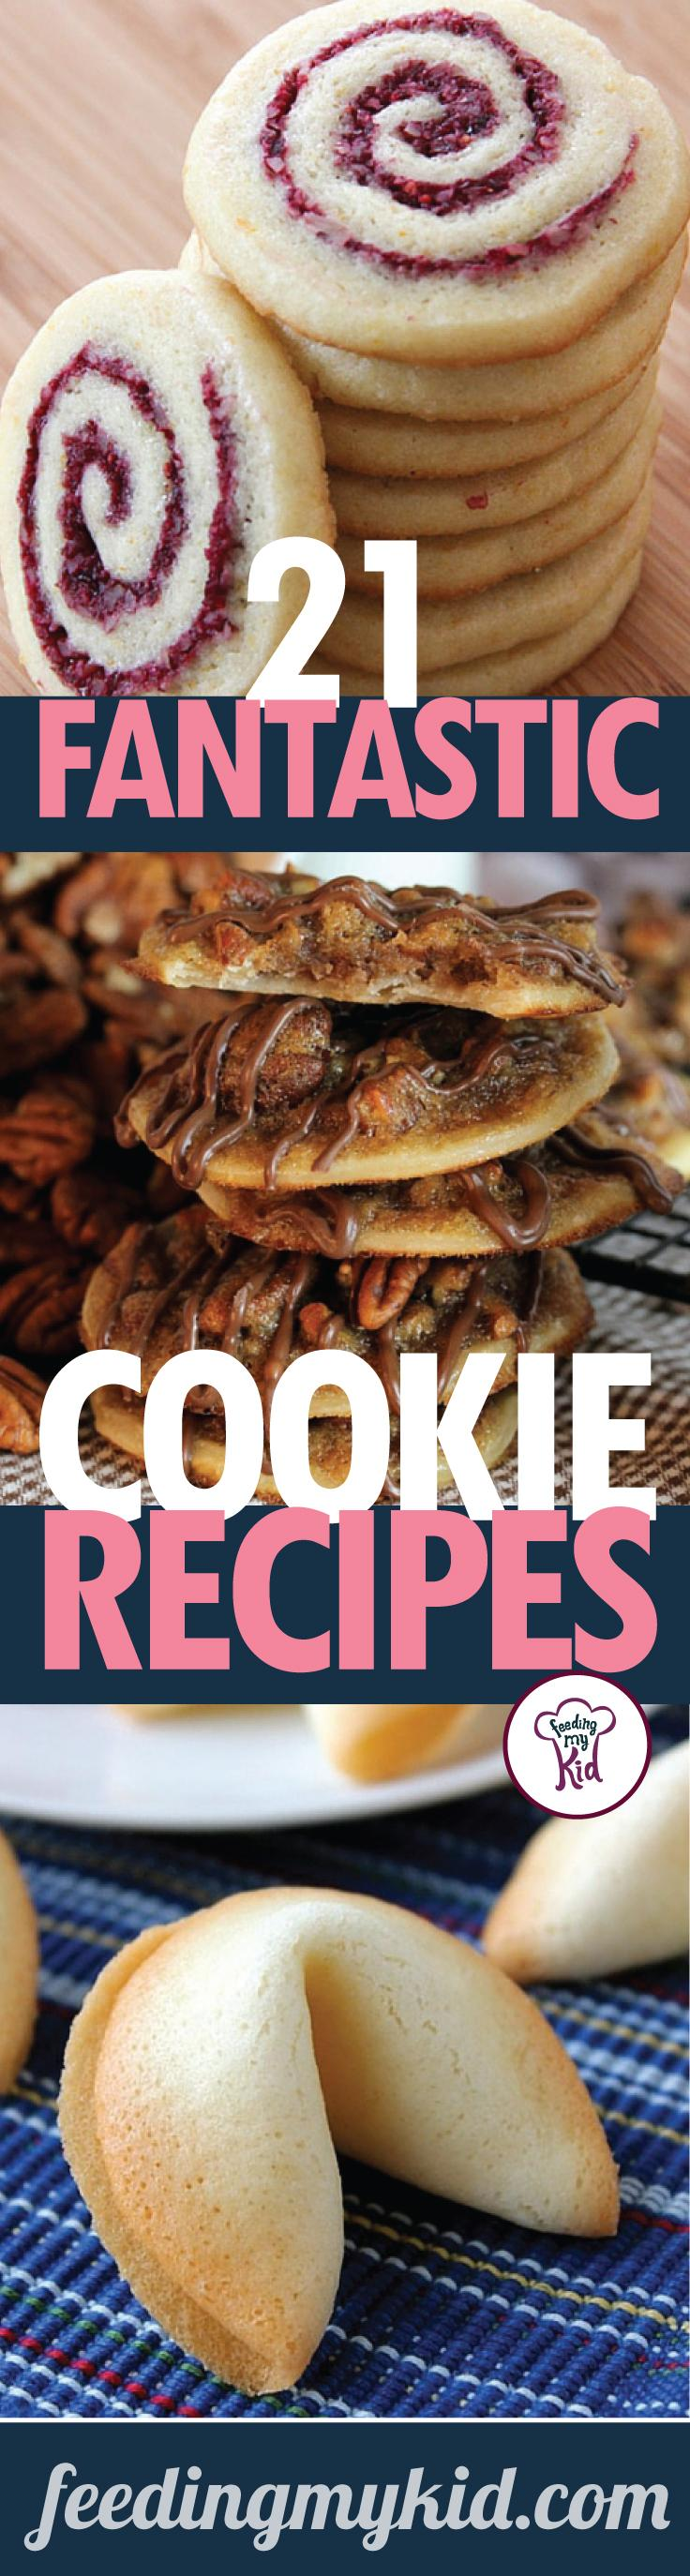 21 Fantastic Cookie Recipes short - Homemade cookie recipes sweeten up our lives in more ways than one! Give these tasty treats a try!